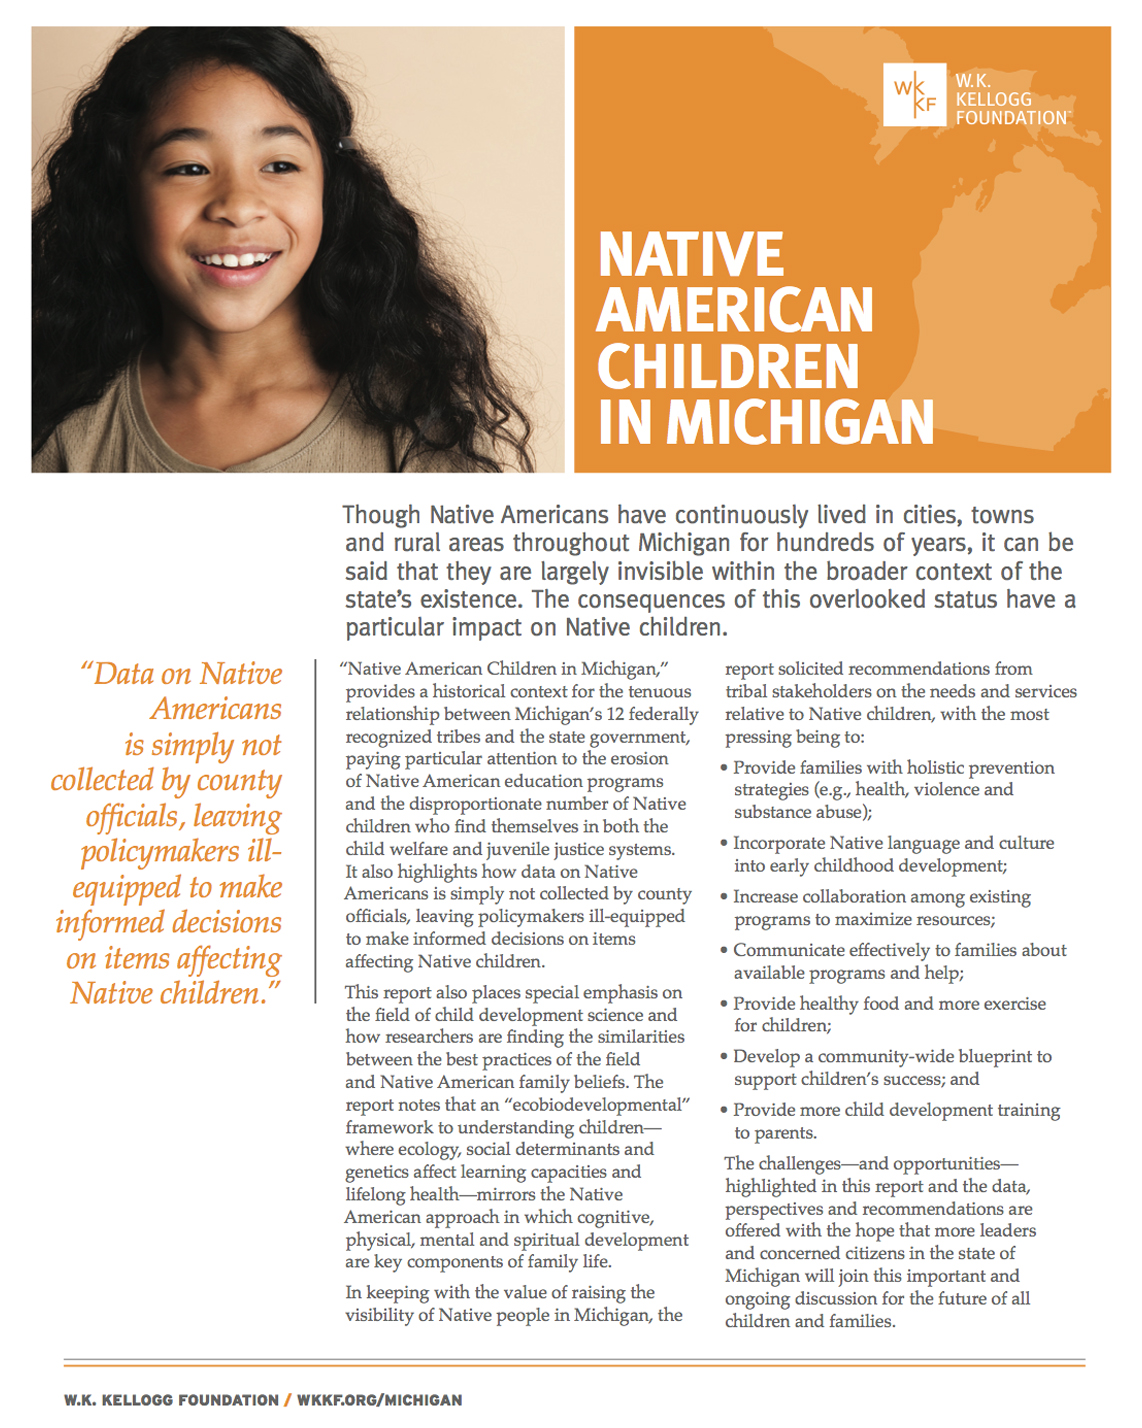 Native American Children in Michigan - Executive Summary - W.K. Kellogg Foundation